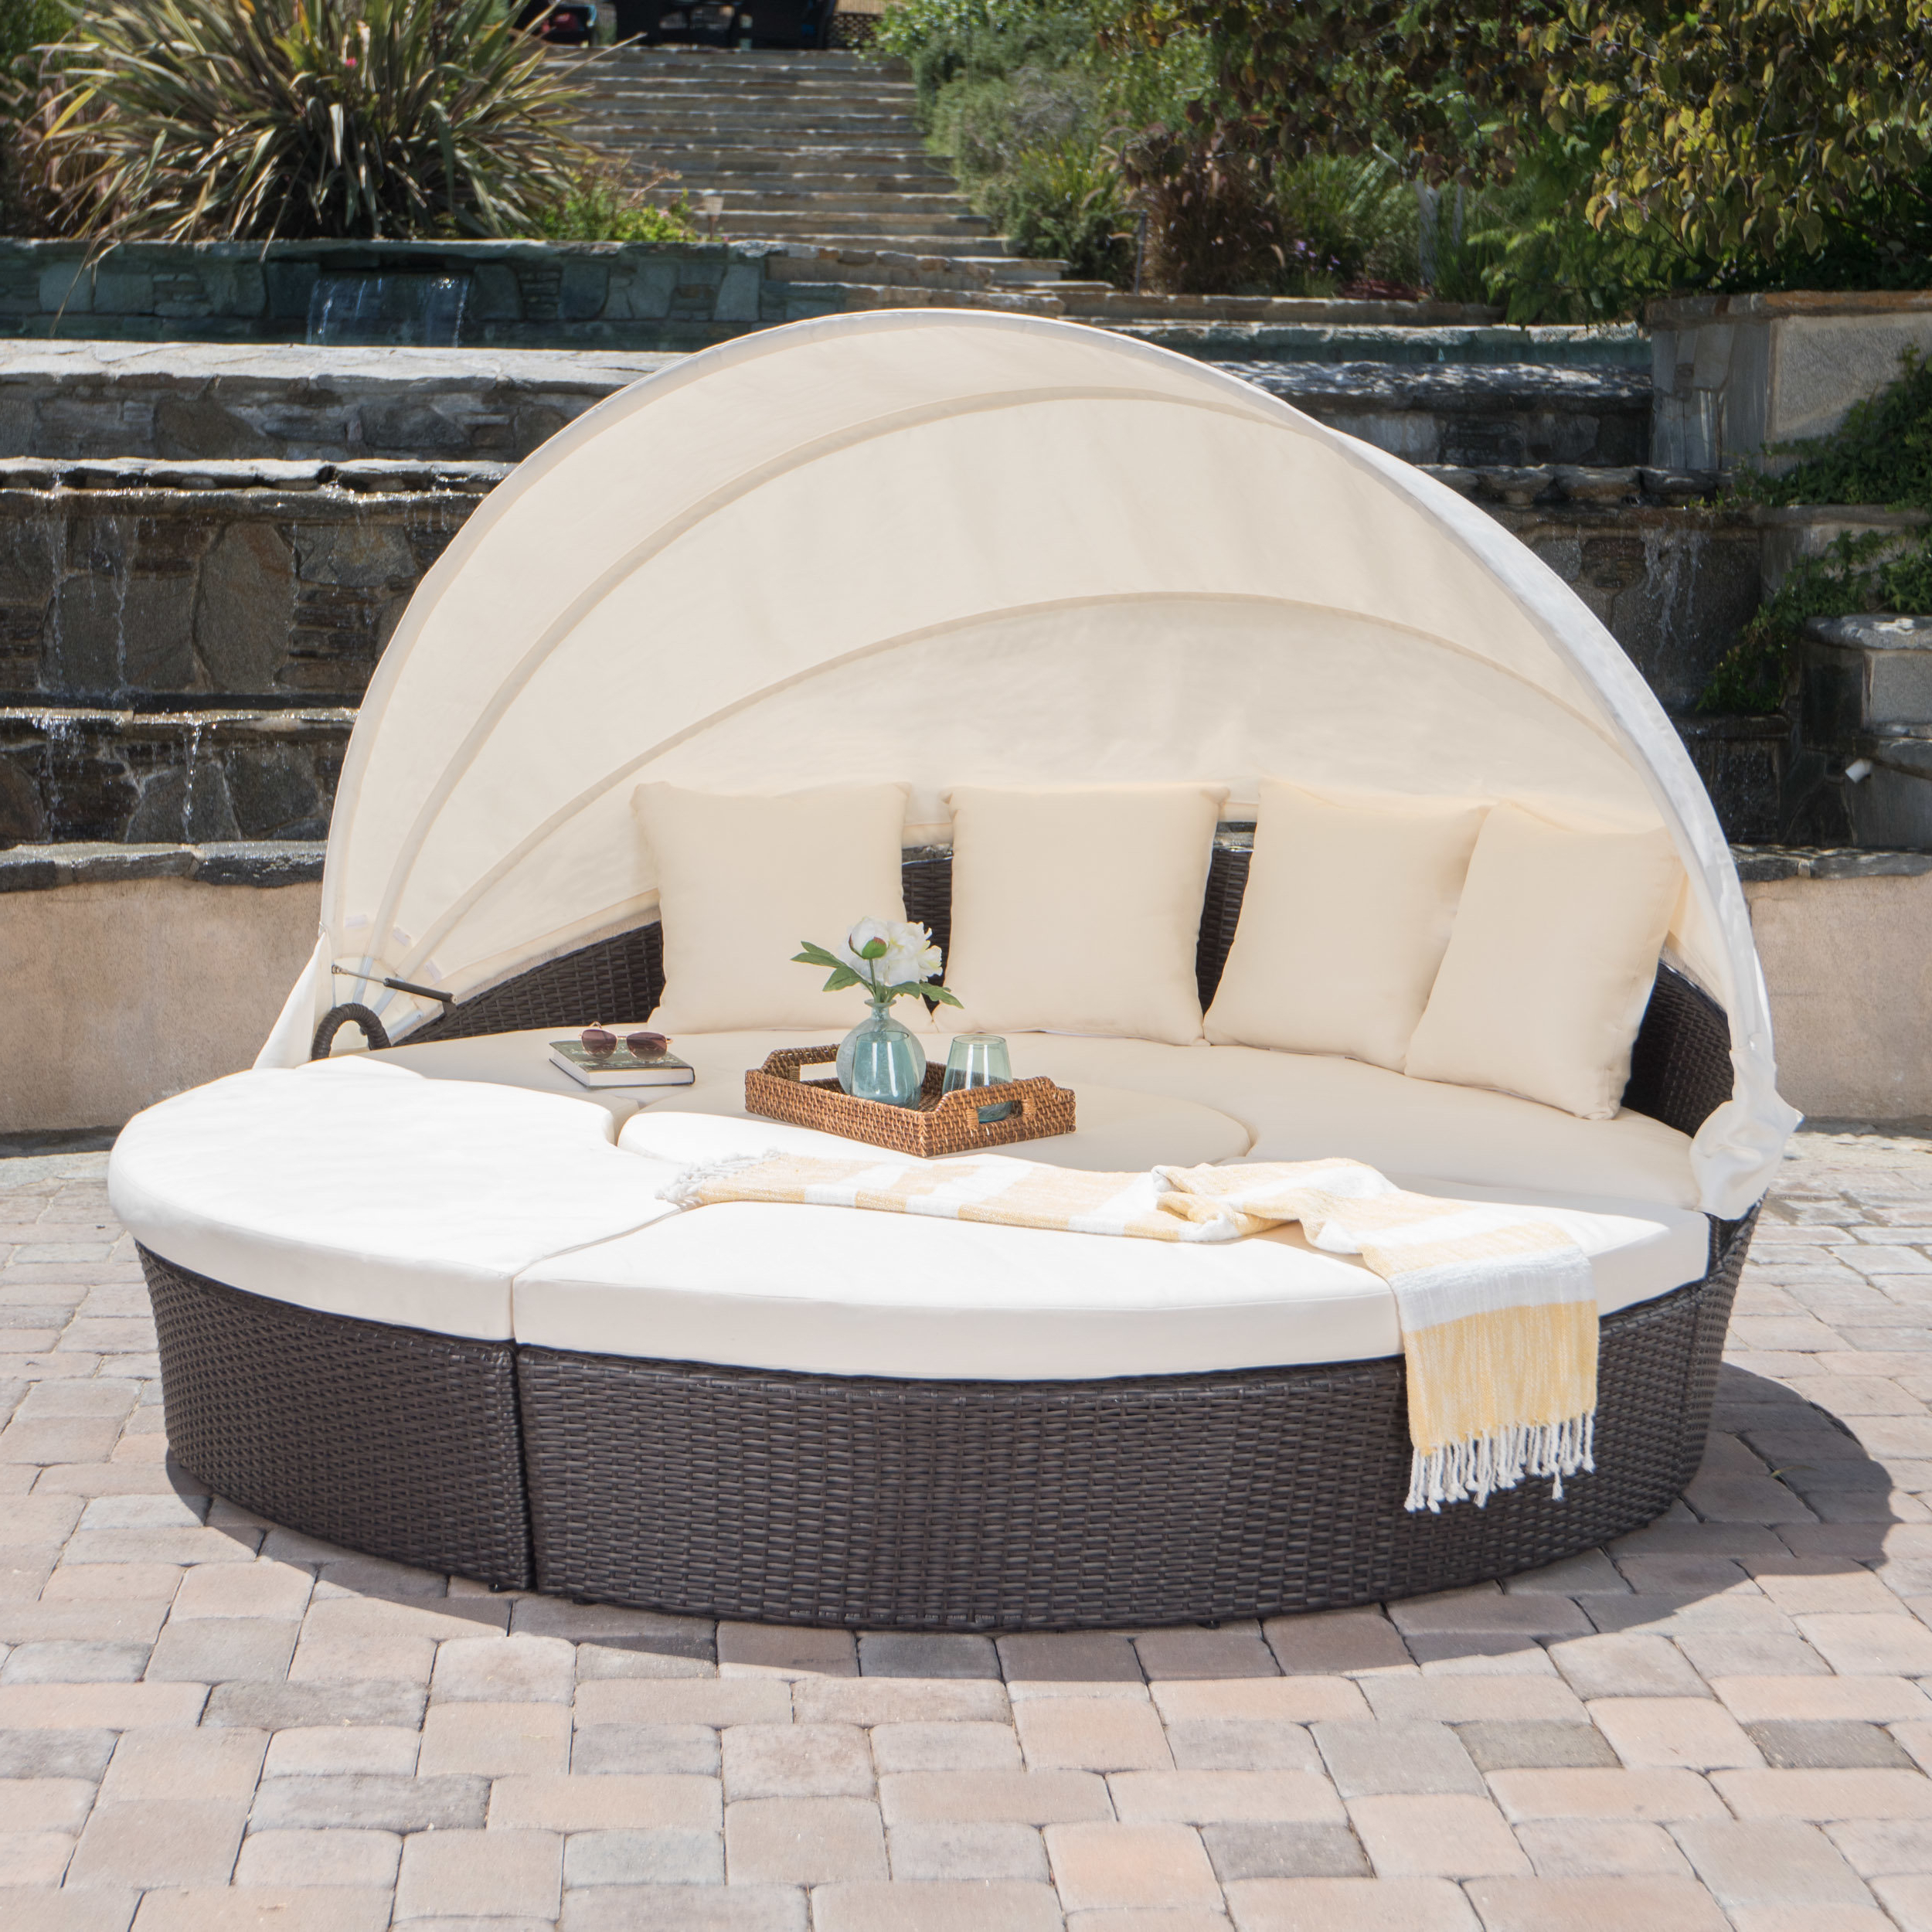 2020 Antigua Patio Daybed With Cushions Inside Fansler Patio Daybeds With Cushions (View 2 of 20)